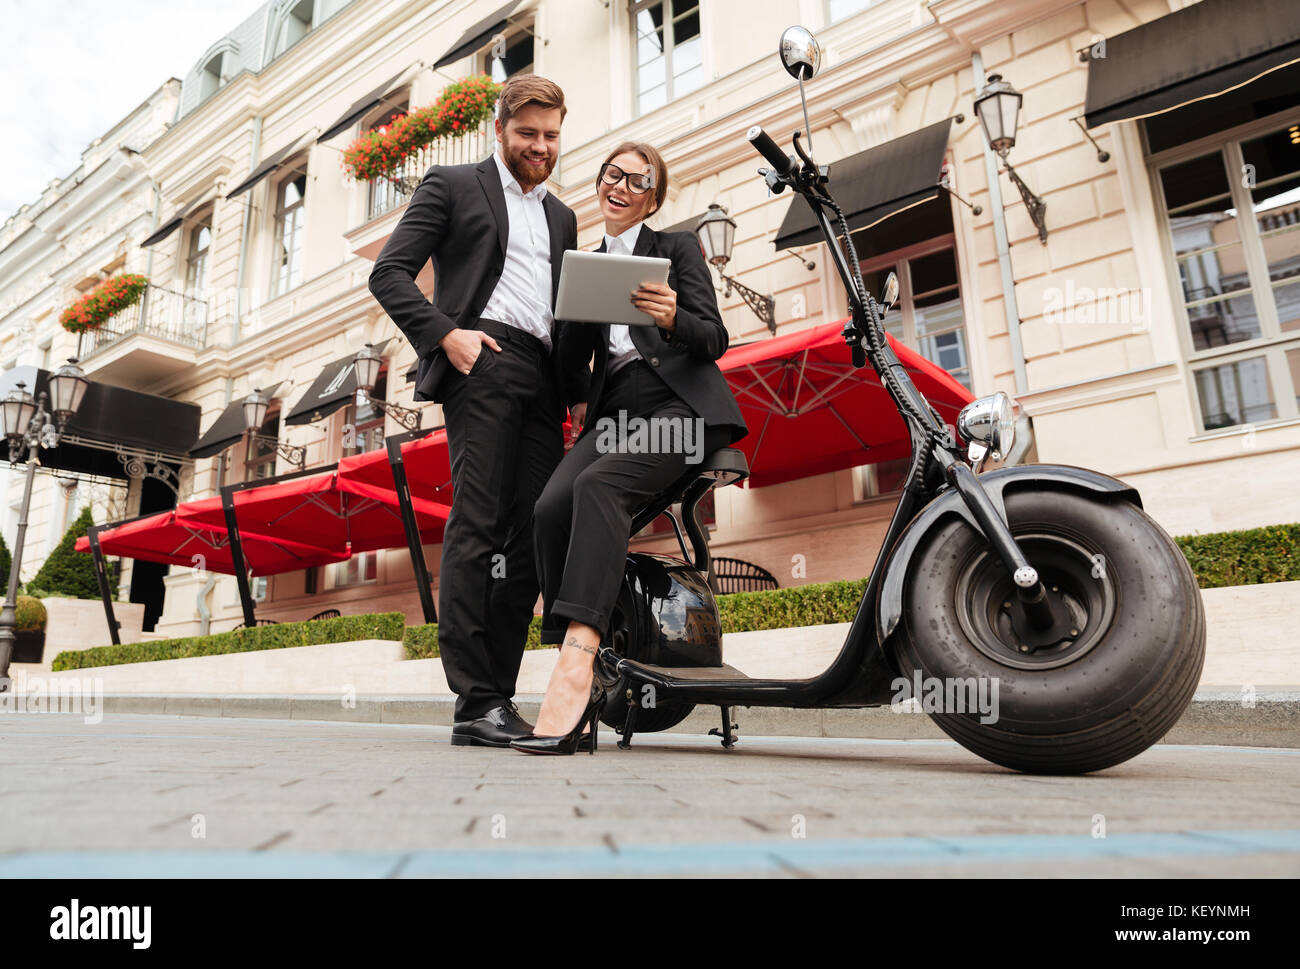 Full length image of happy business couple posing near the modern motorbike outdoors and using talet computer - Stock Image